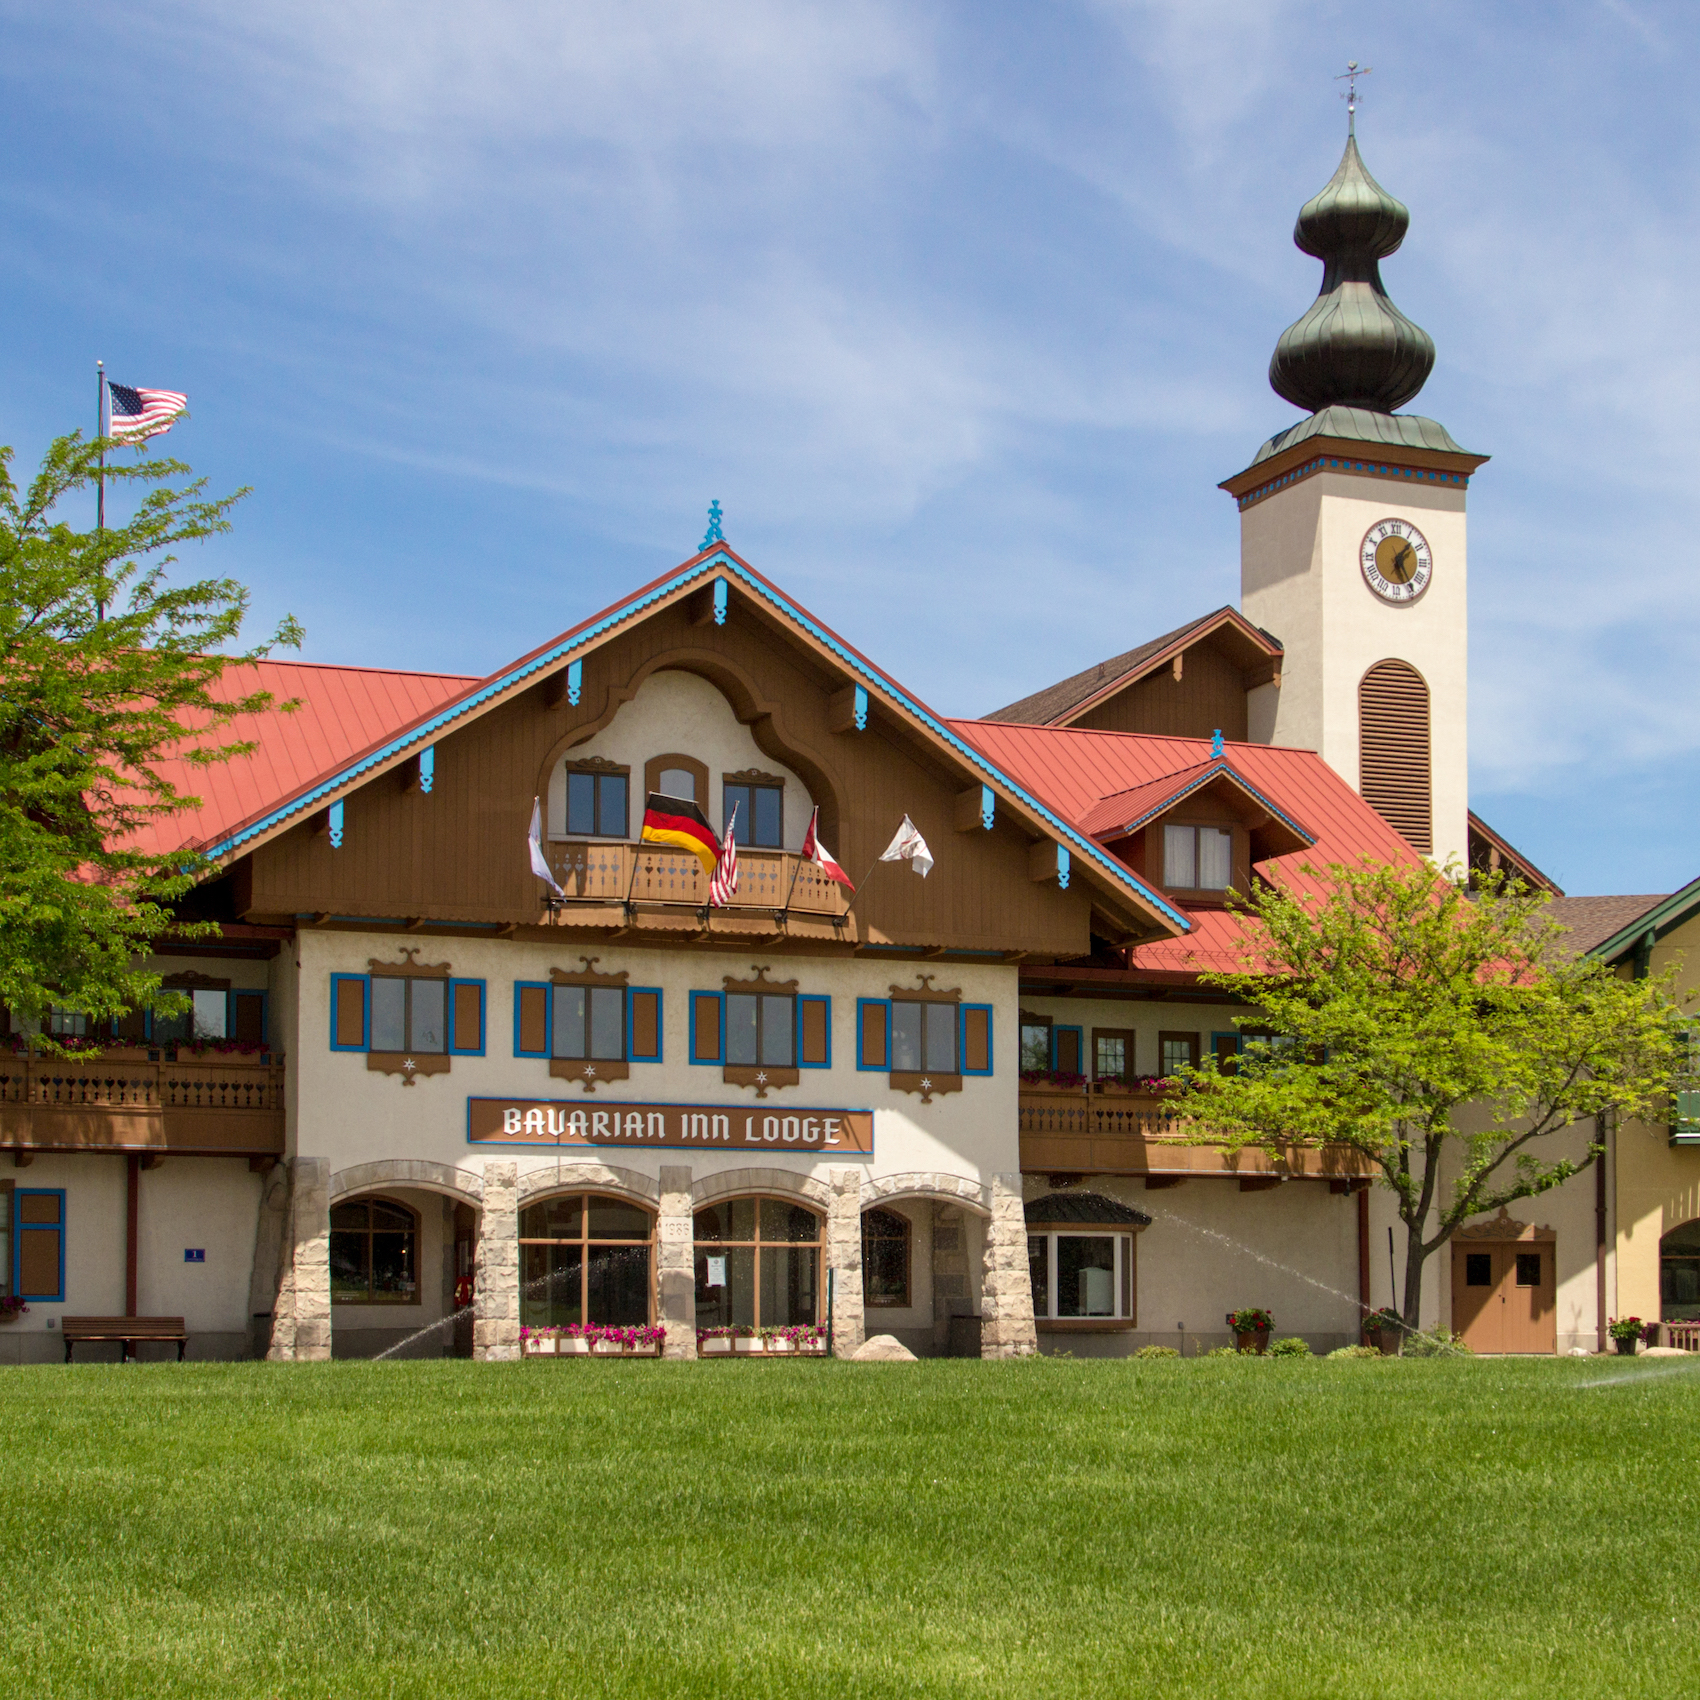 The Bavarian Inn Lodge in Frankenmuth, Michigan.